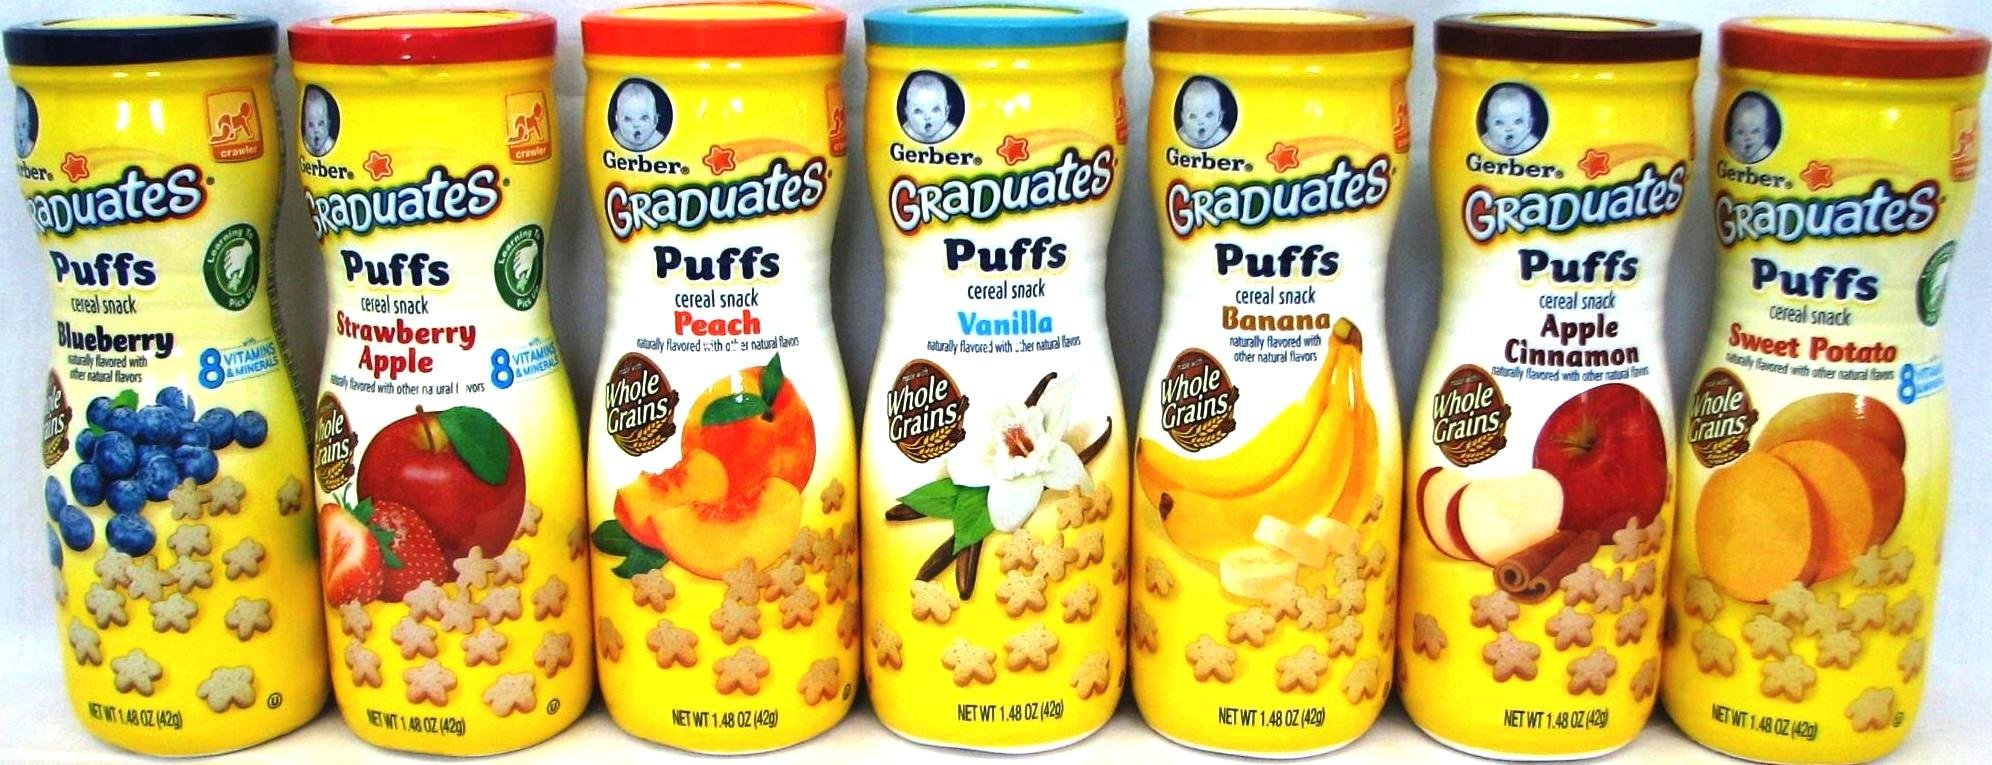 Gerber Graduates PUFFS Cereal Snack Variety Pack + Puffs Snack Catcher Cup- All 7 Flavors 1.48oz by Narrow Path Sales